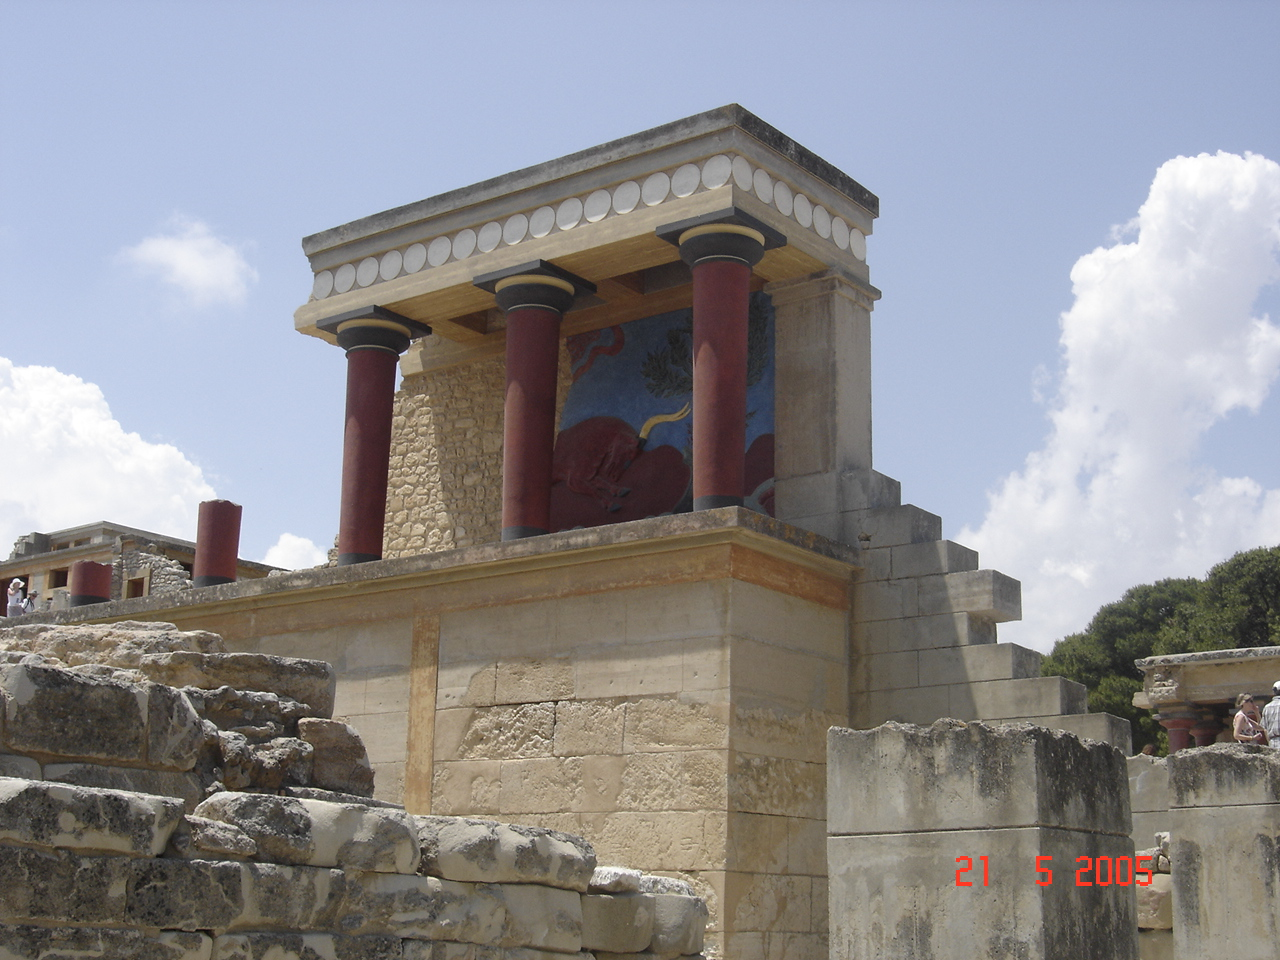 File:Minoan Palace of Knossos.jpg - Wikimedia Commons